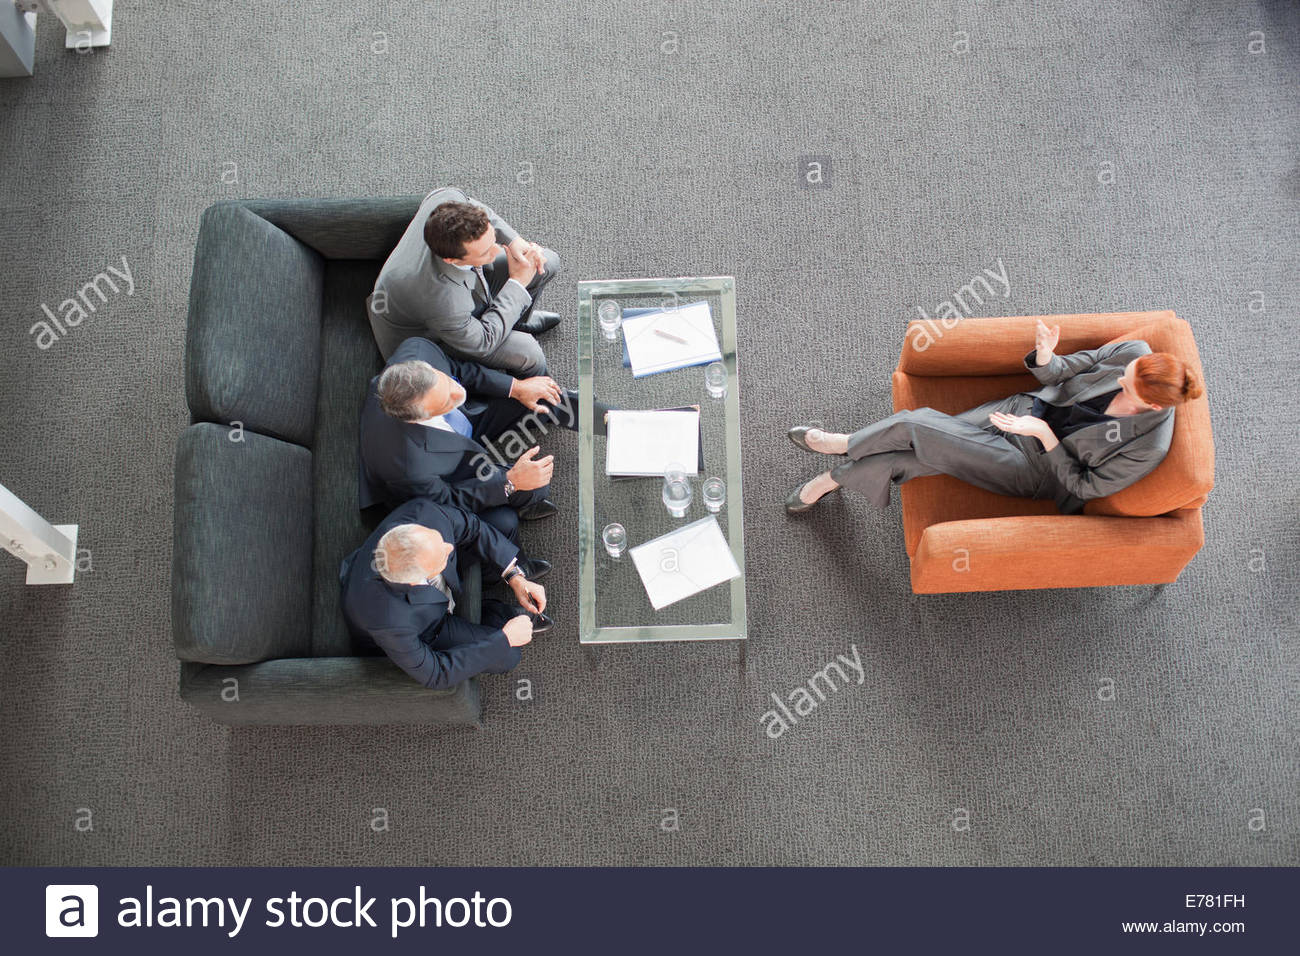 Businesswoman leading meeting with co-workers in lobby - Stock Image